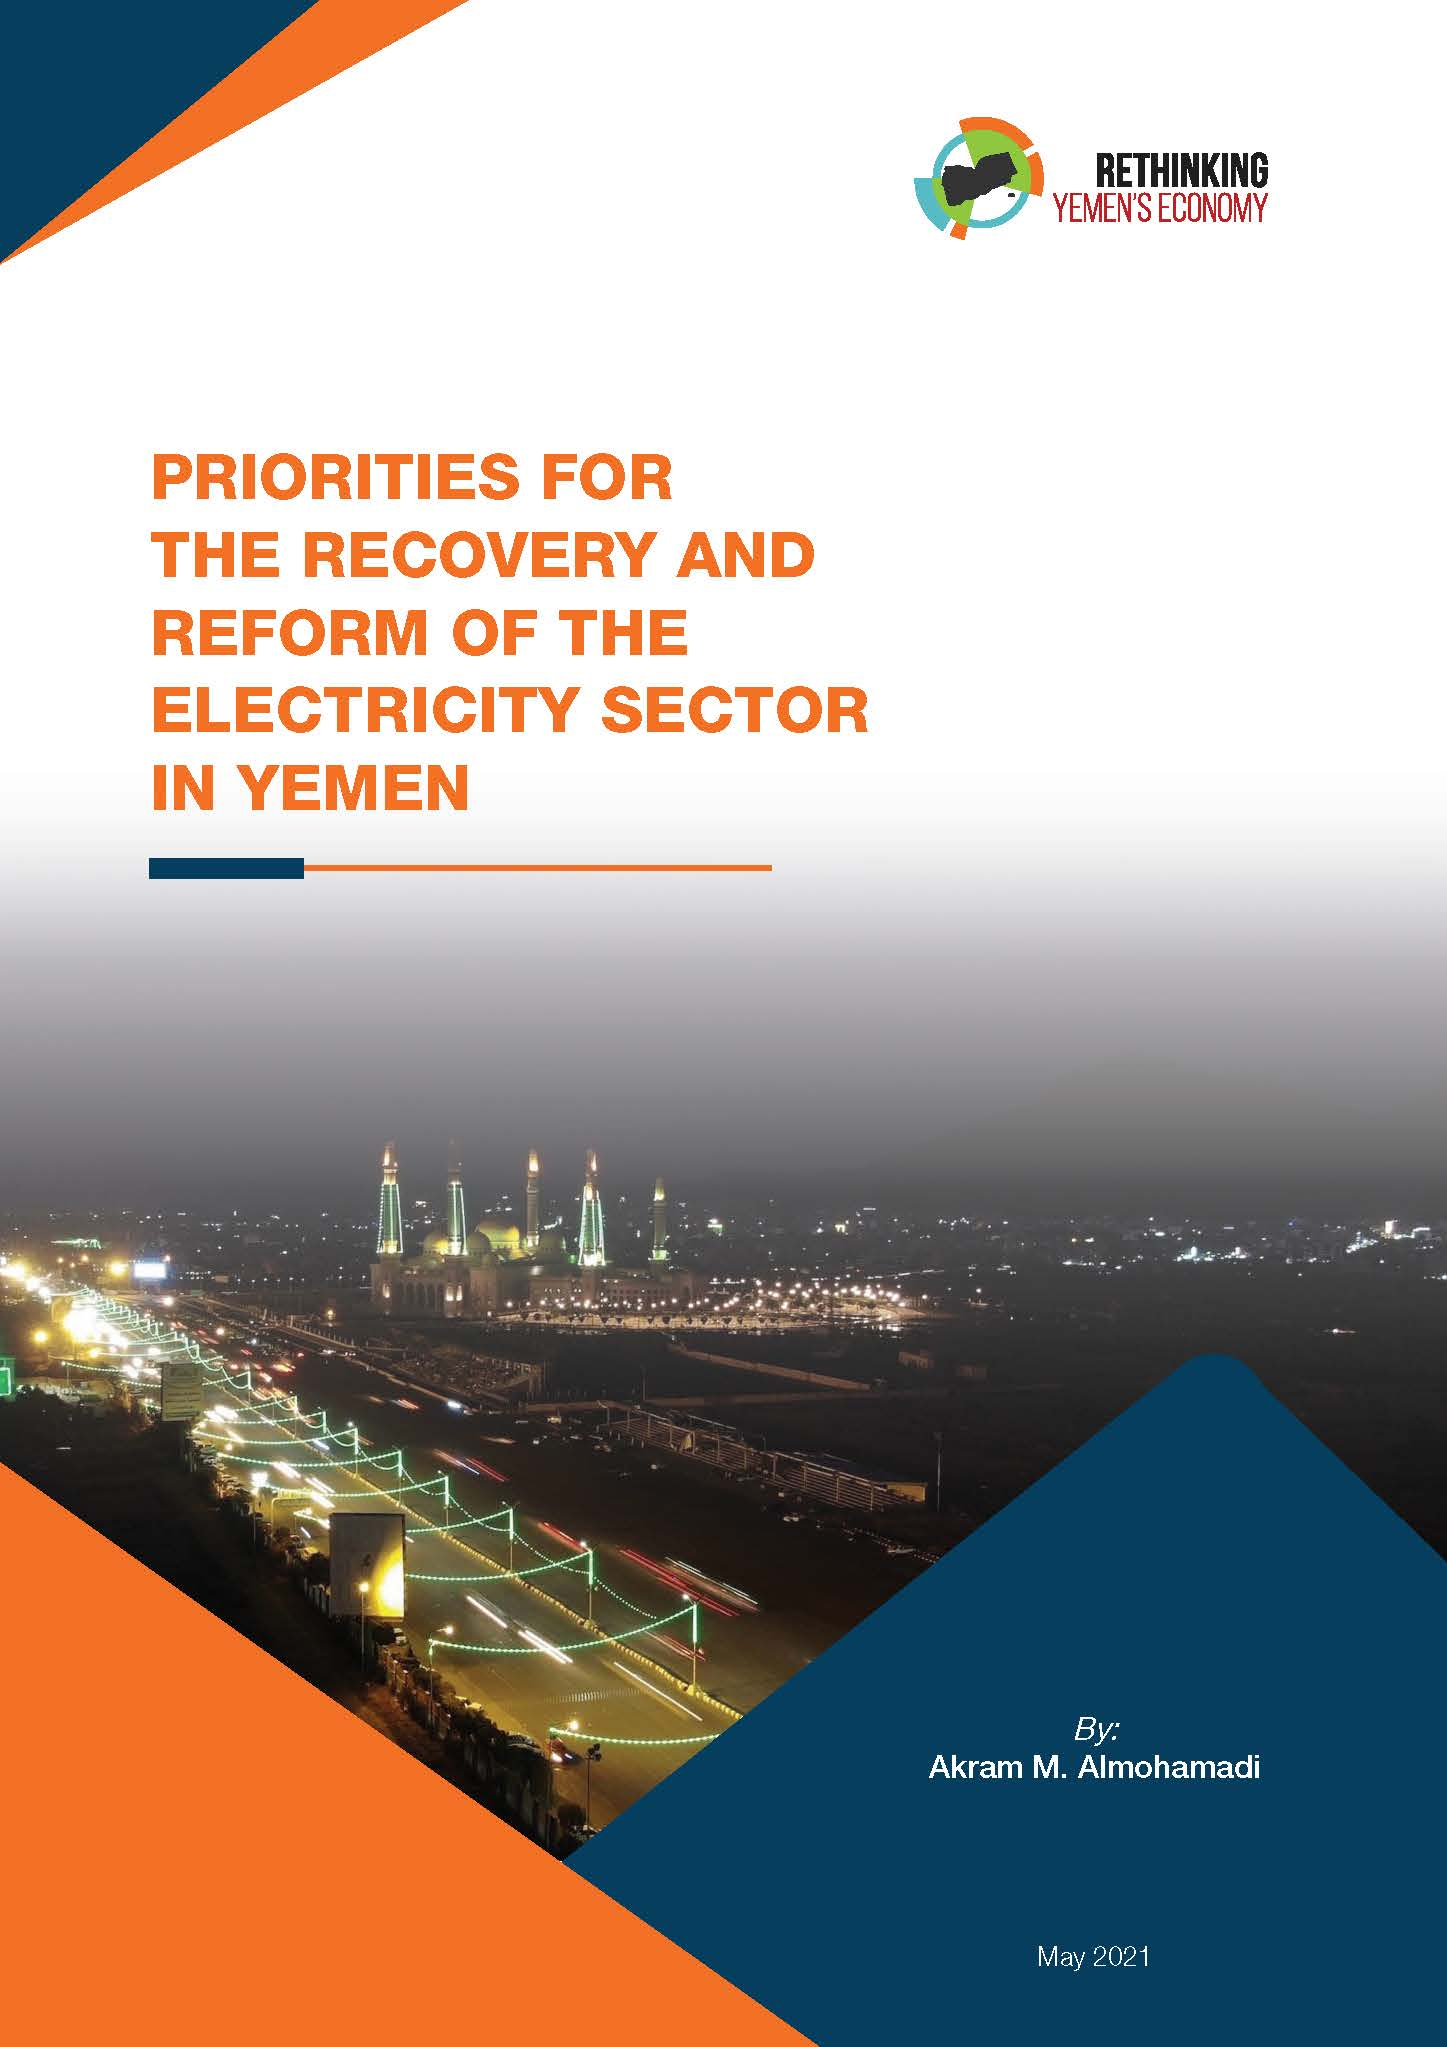 Priorities for the Recovery and Reform of the Electricity Sector in Yemen